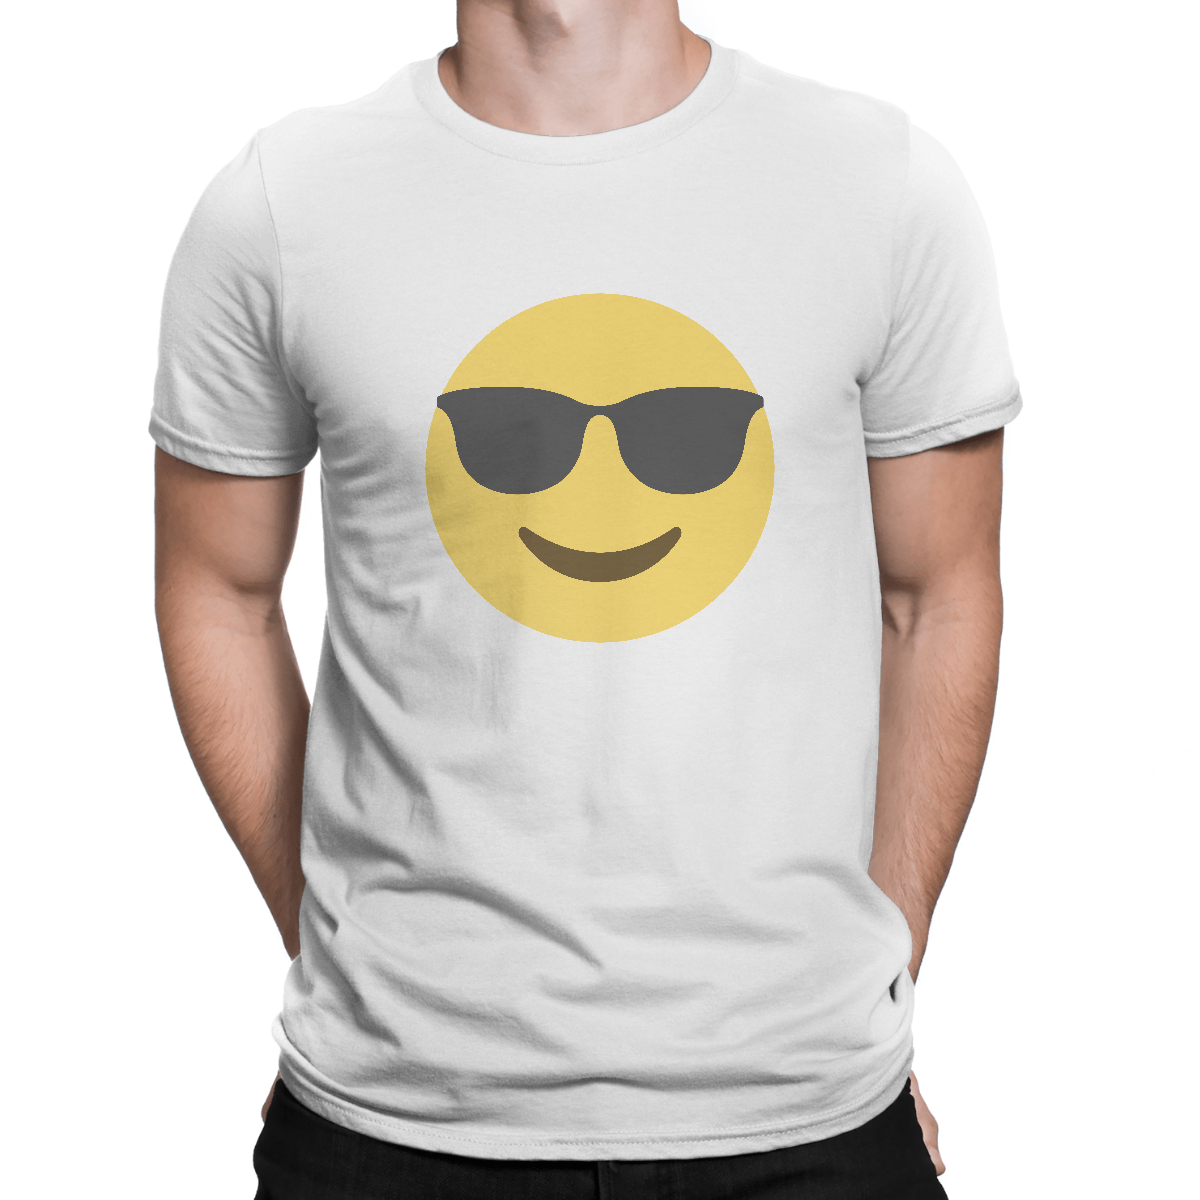 Emoji T-Shirts, Leggings, more. Wear More Emoji